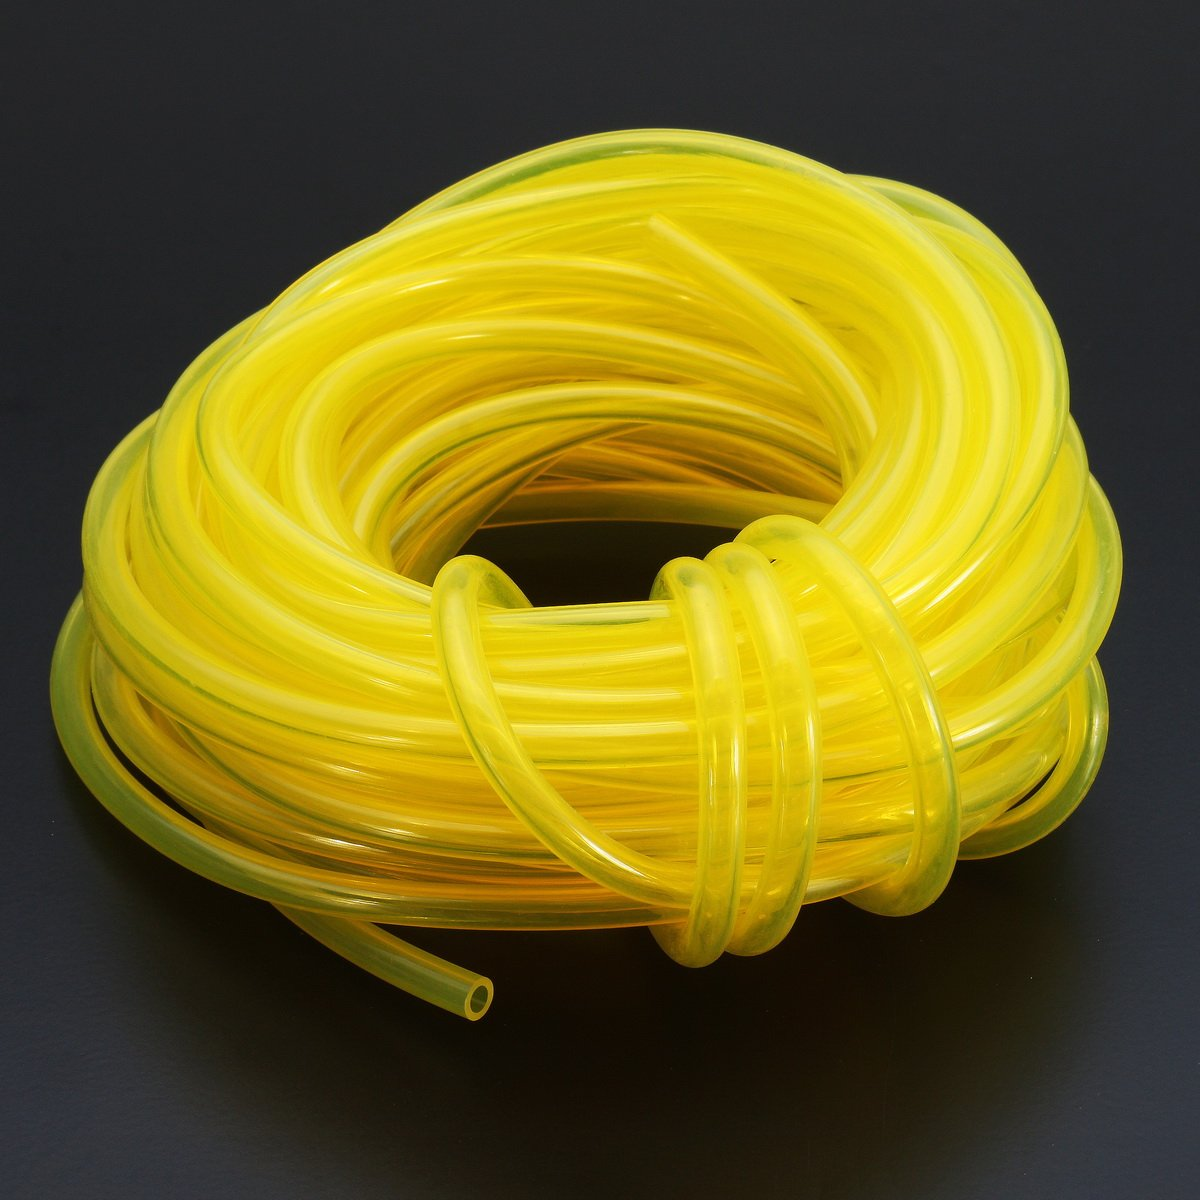 SummerHome 32.8Ft 10M Tygon Petrol Fuel Gas Line Pipe Hose - I.D 1/8'' O.D 3/16''(3mm x 5mm) by SummerHome (Image #4)